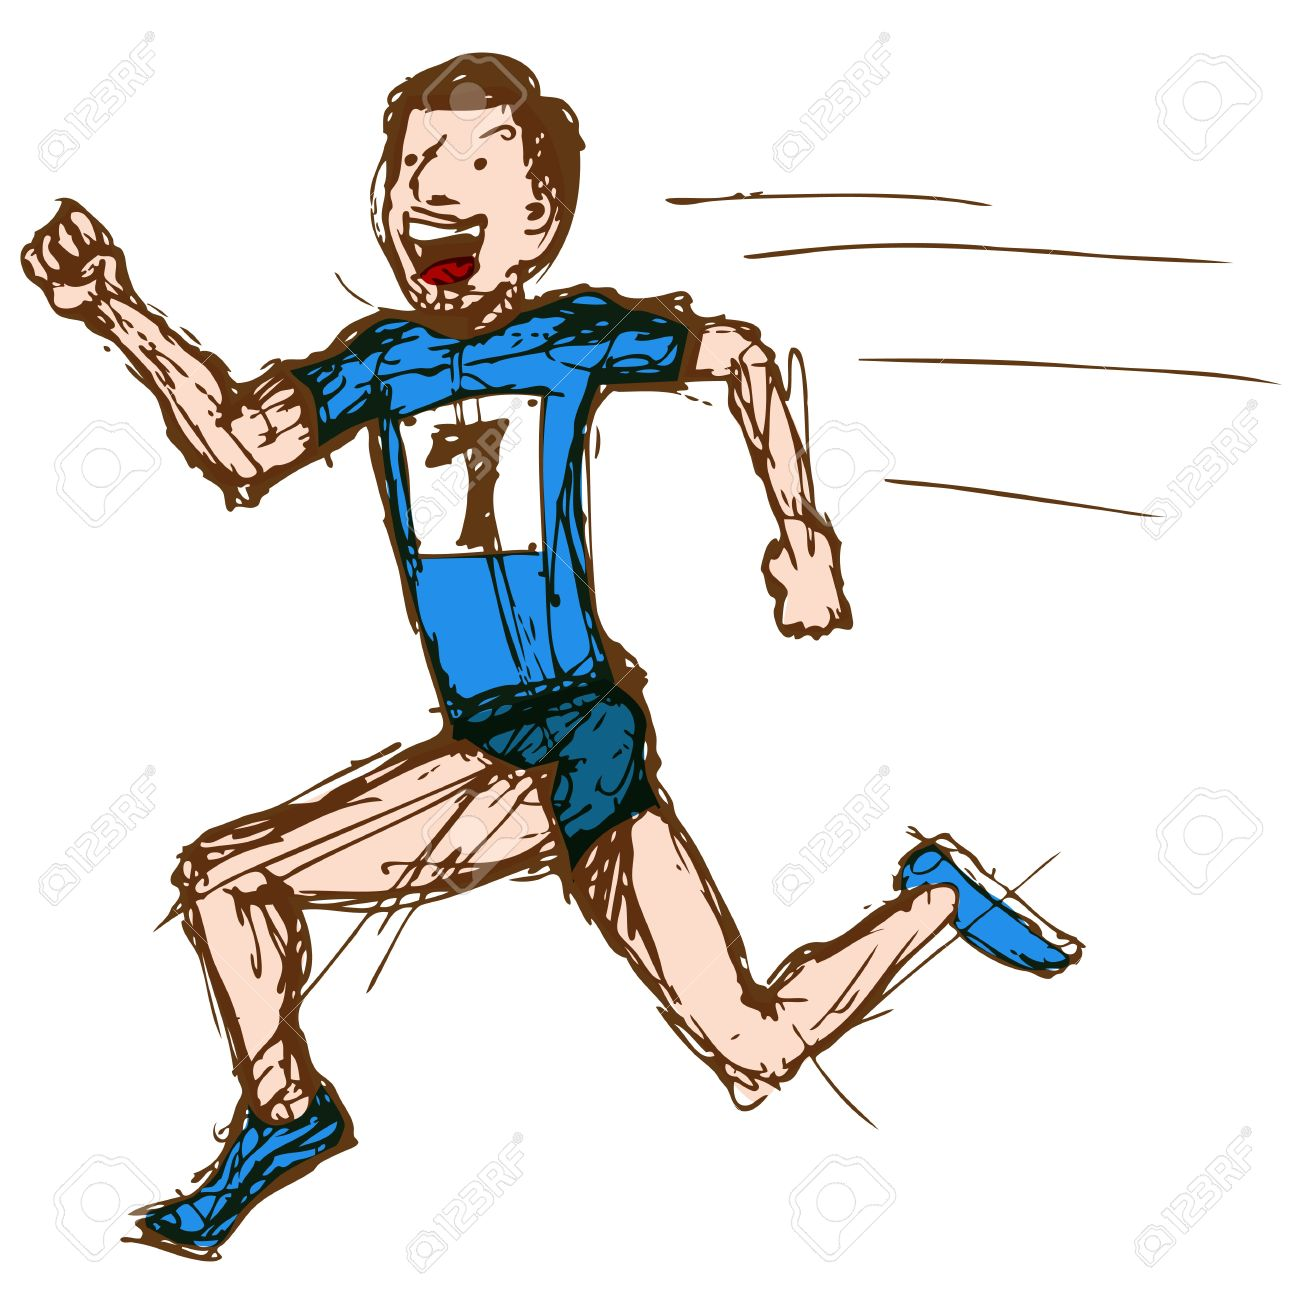 1300x1300 An Image Of Sketch Drawing Of A Male Runner. Royalty Free Cliparts